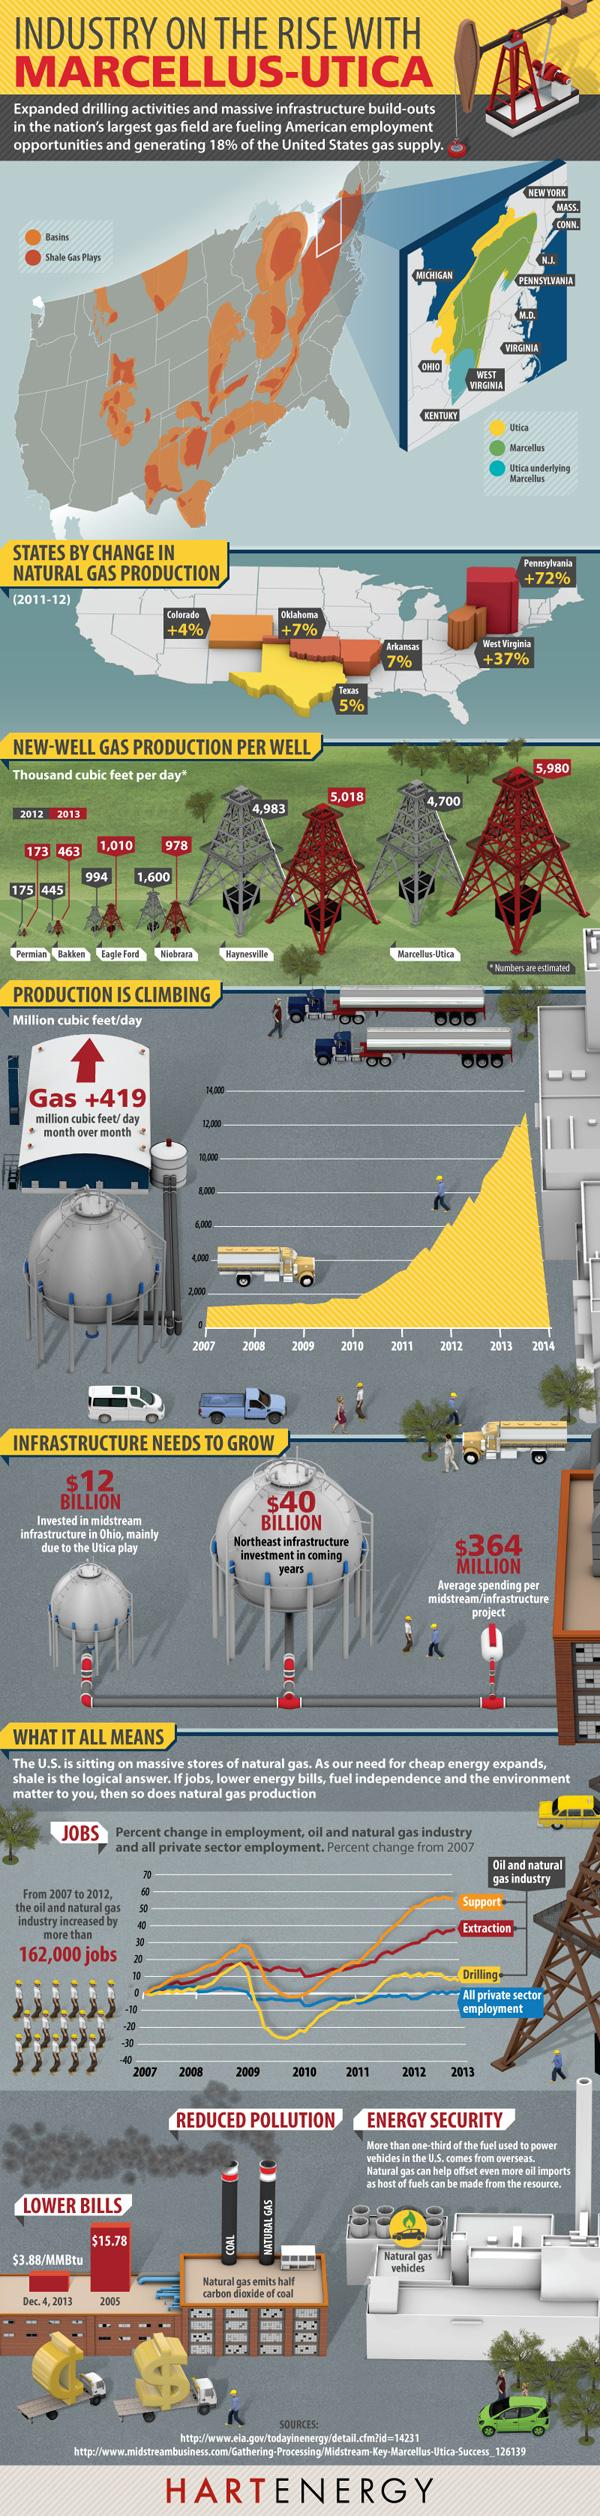 rise-of-marcellus-utica-industry-infographic